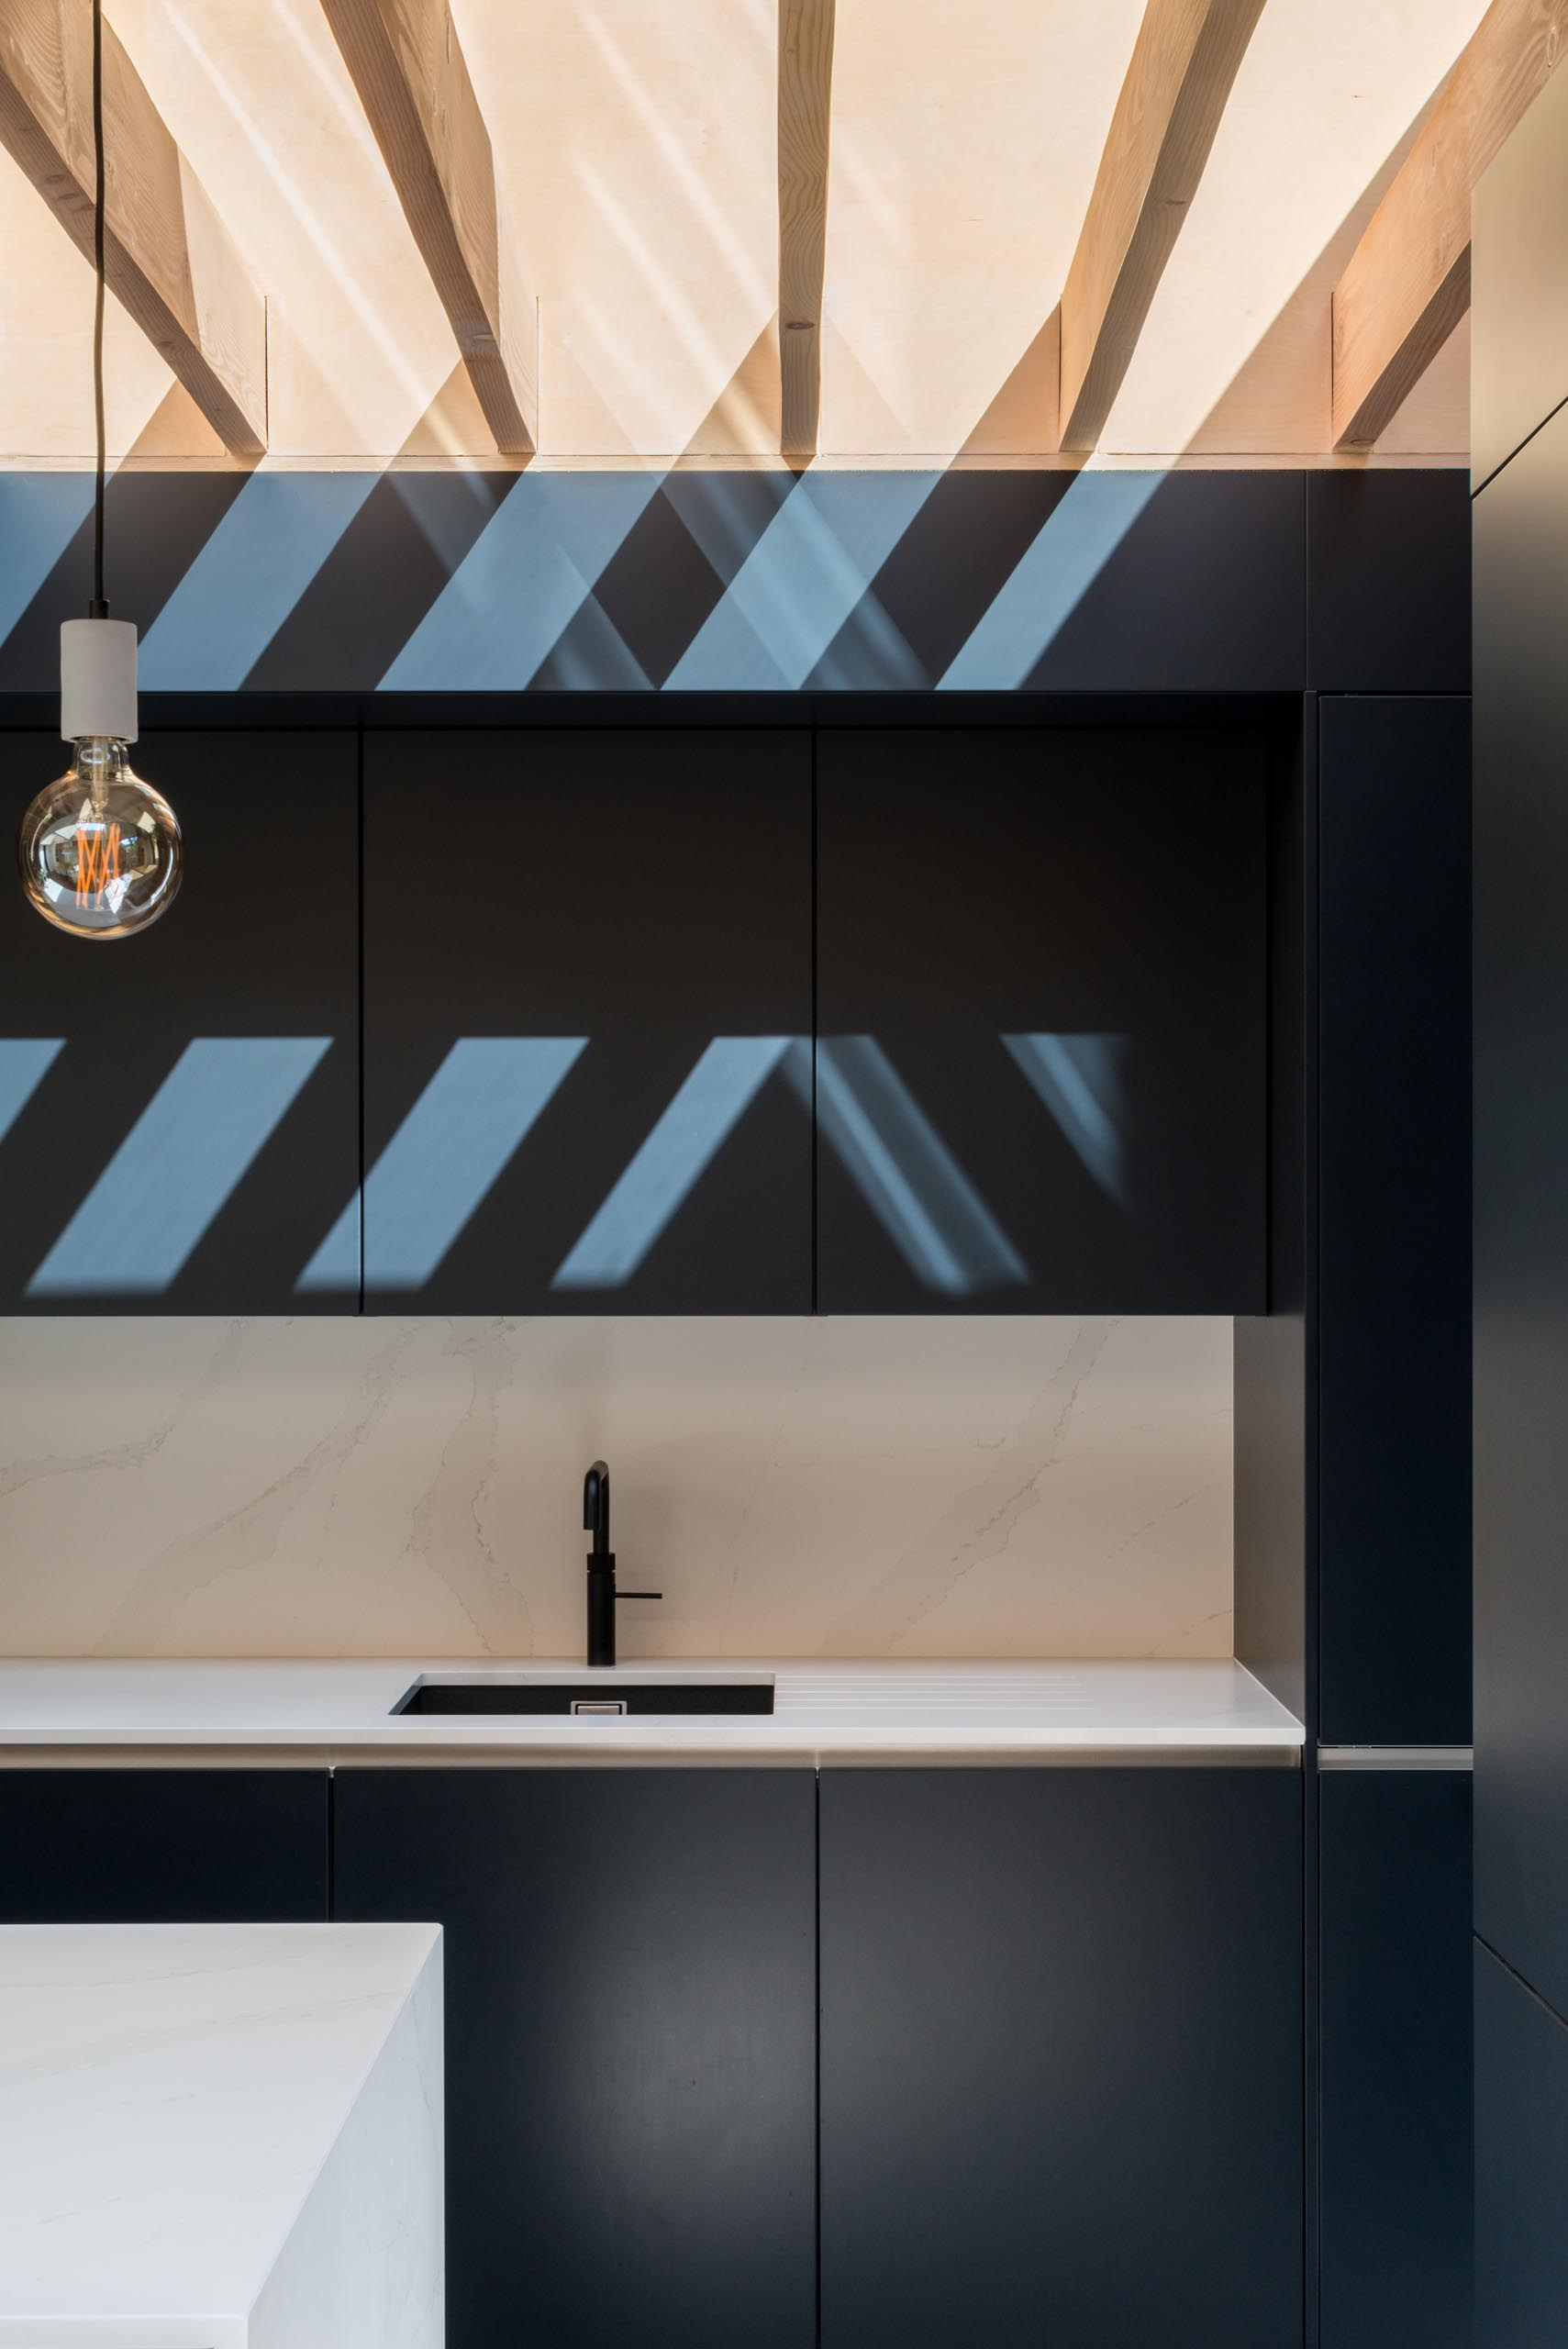 Modern matte black kitchen cabinets contrast the white countertops.